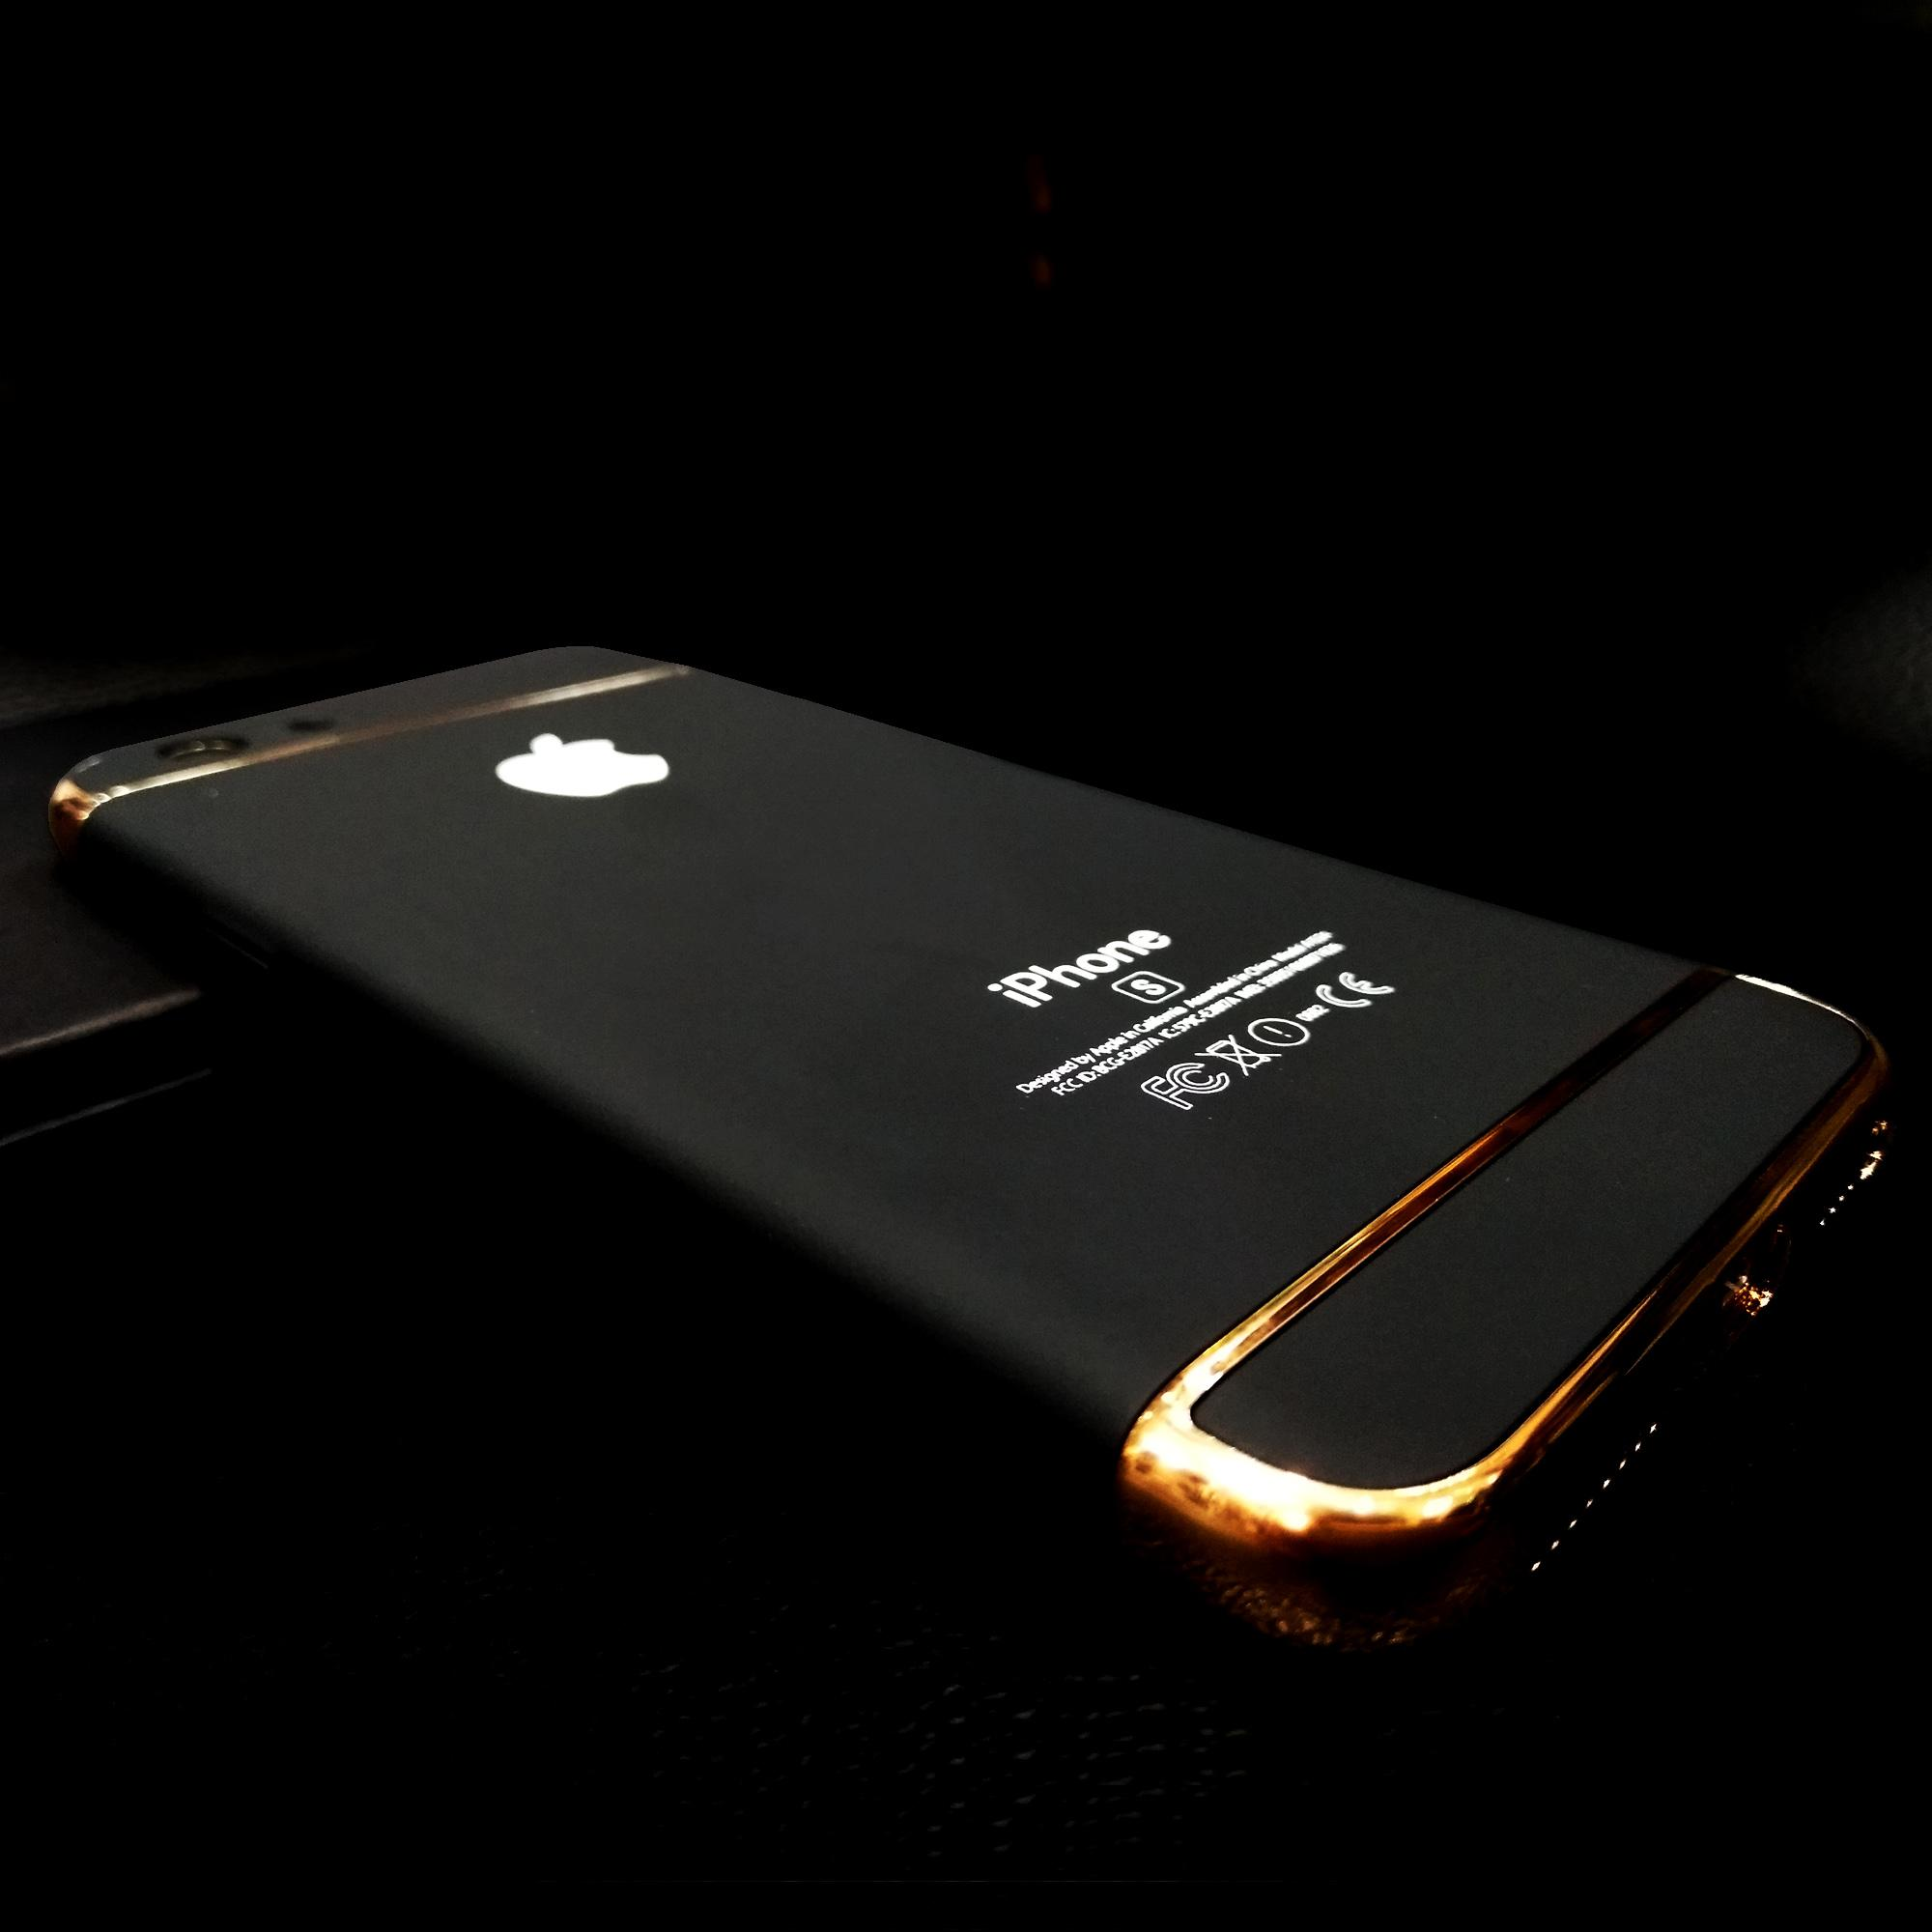 Marintri Case Vivo Y53 Luxury Elegant Vivo Rasa iPHone Black